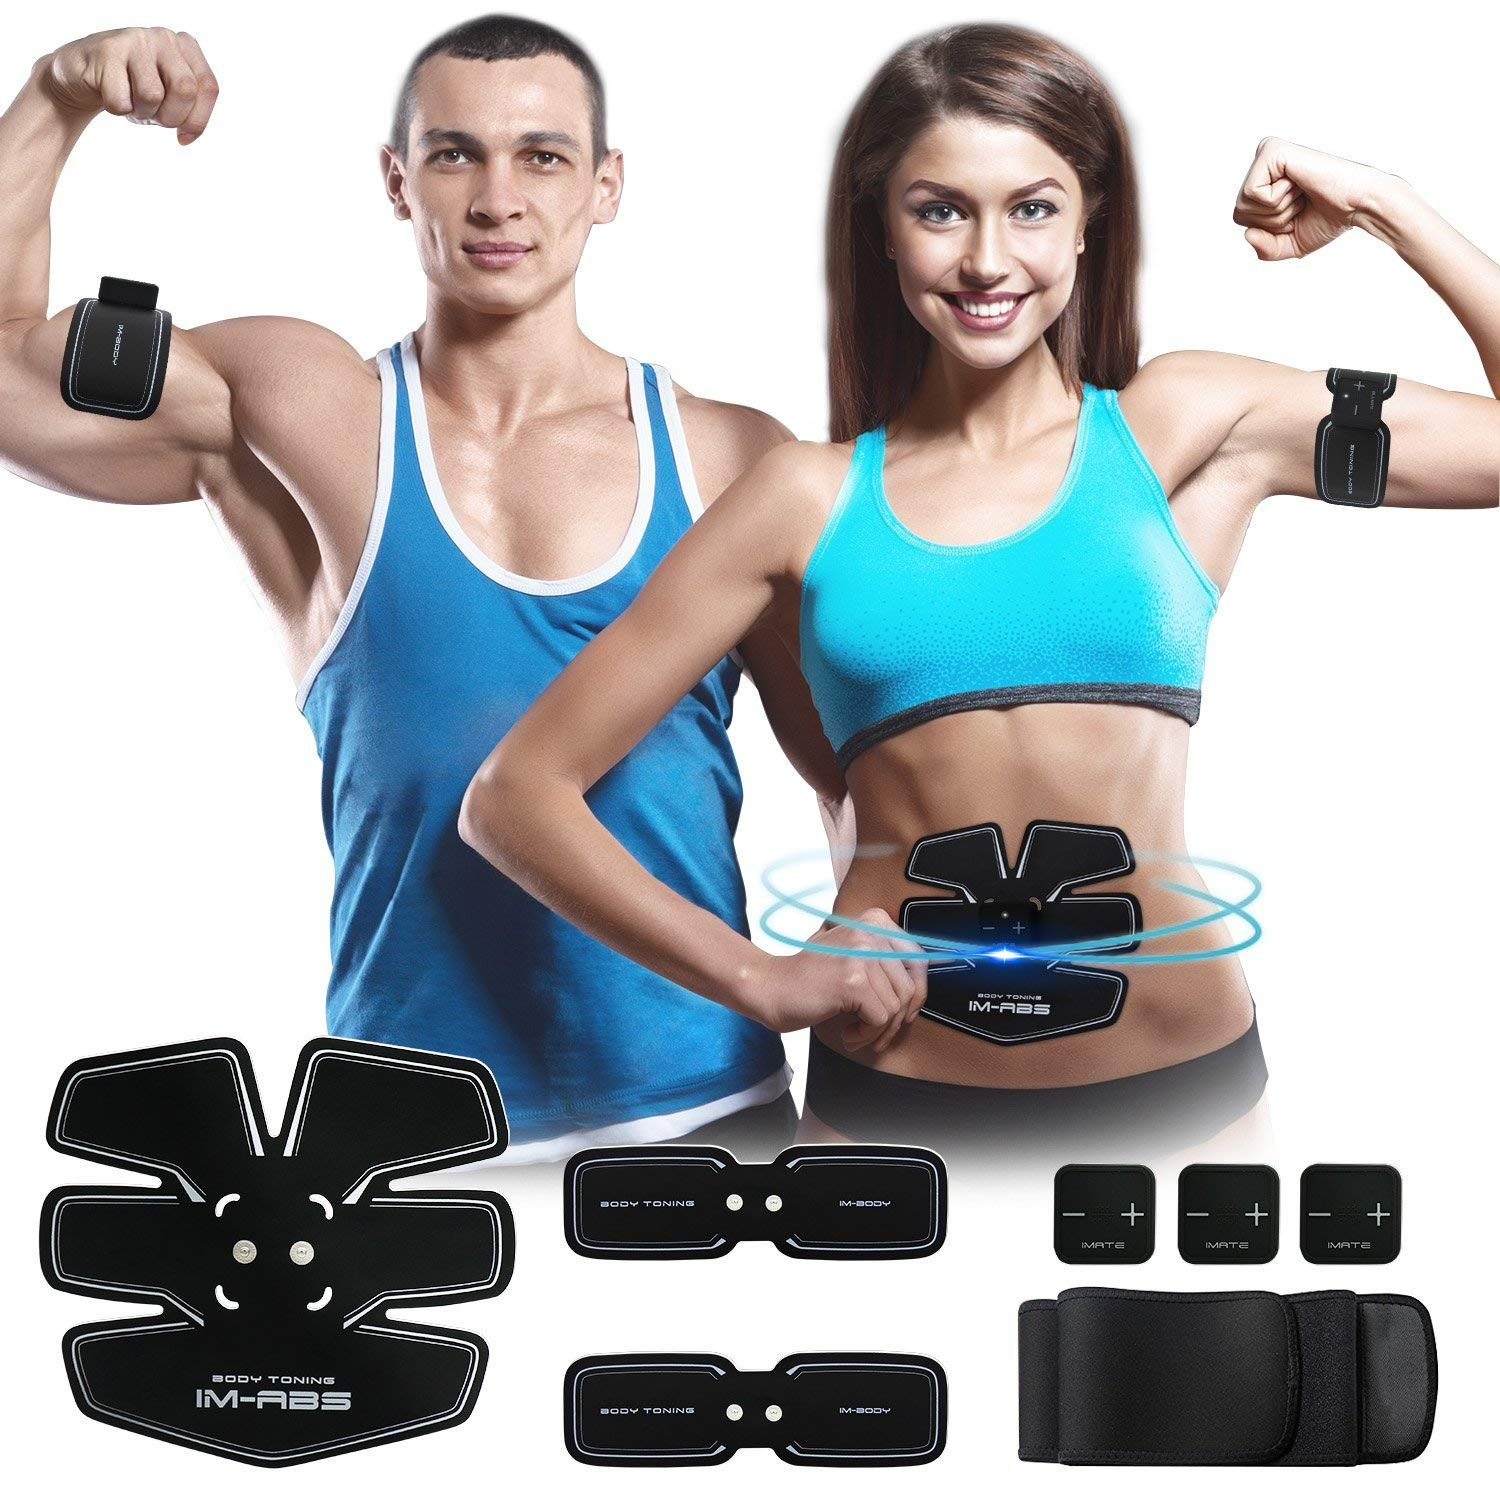 Ab Rollers Capable Abdominal Training Pad Abdomen Muscle Toner Waist Arm Leg Muscle Toning Fitness Muscle Stimulator Workout Equipment Host